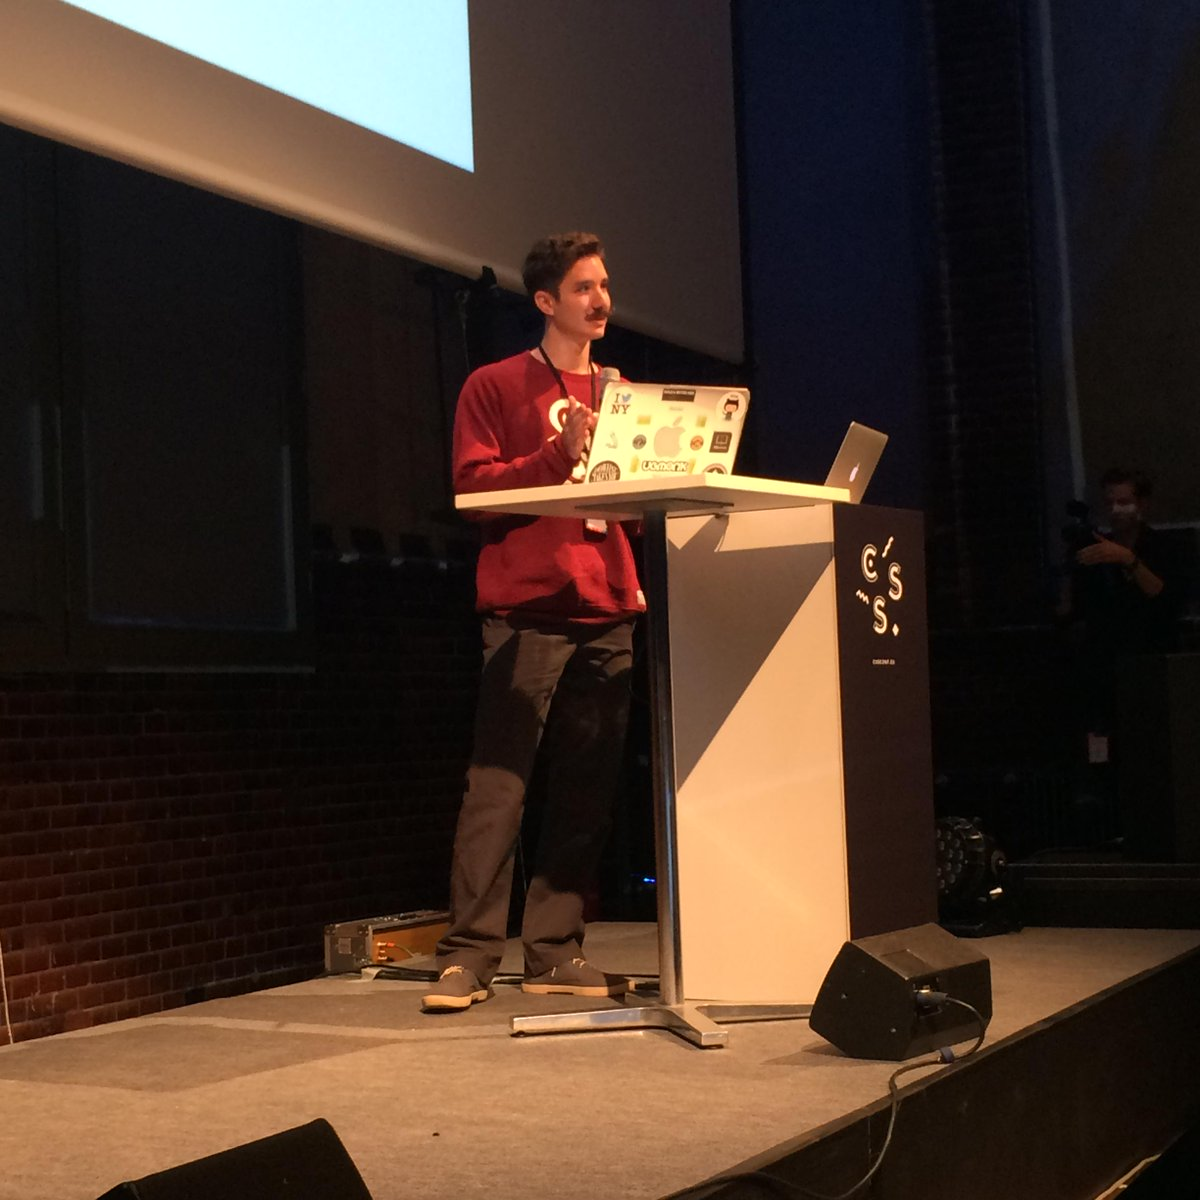 Our MC @hipsterbrown opening #CSSconfeu! http://t.co/yZ0zOajaLT